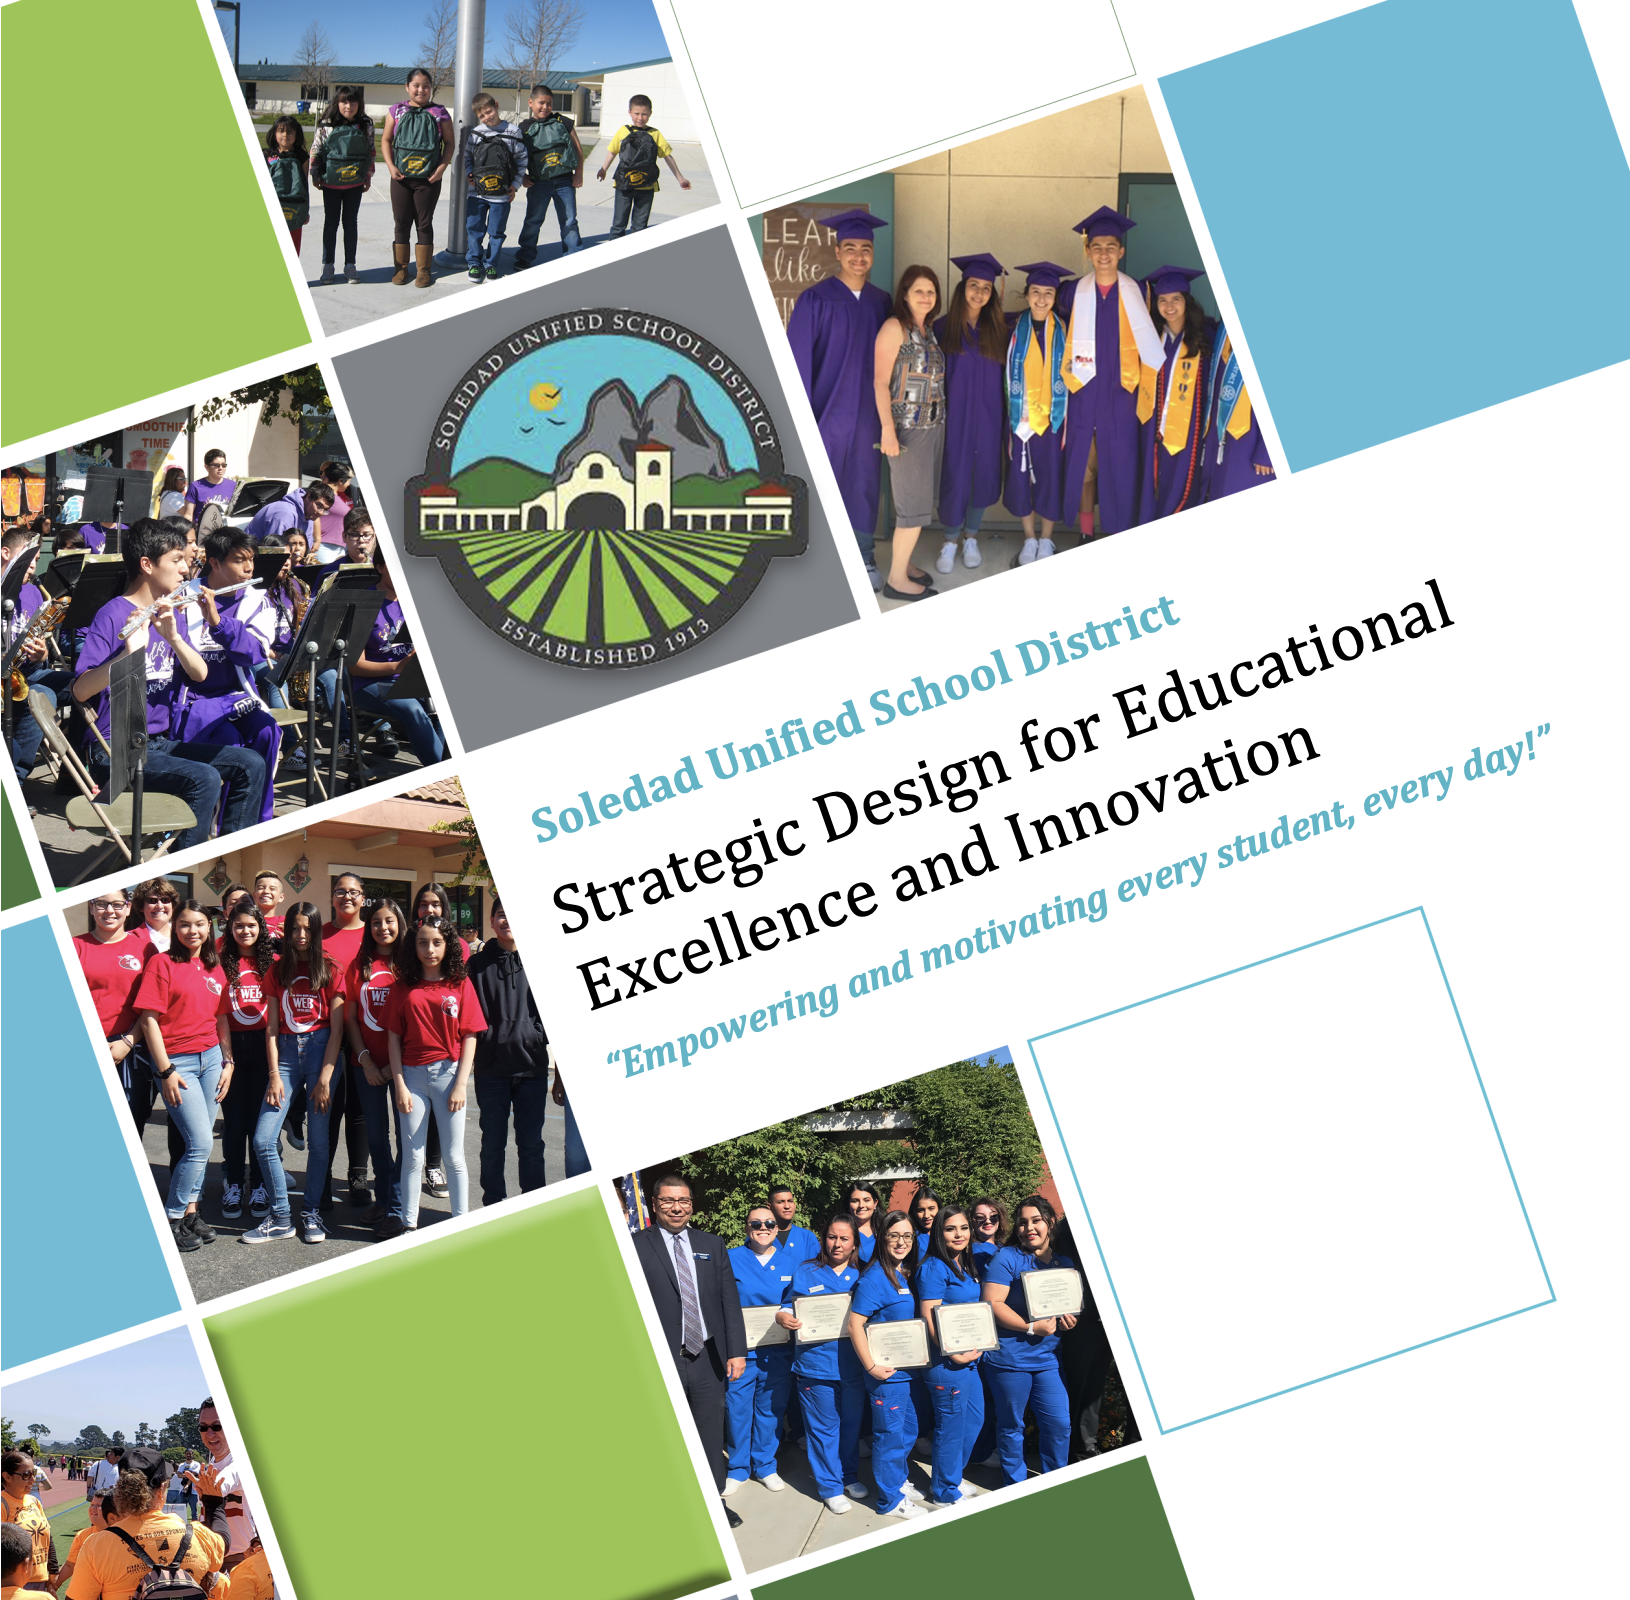 """Image of the front page of our booklet """"Soledad Unified School District Strategic Design for Educational Excellence and Innovation, """"Empowering and motivating every student, every day!"""""""", has district logo and a few pictures of our students."""